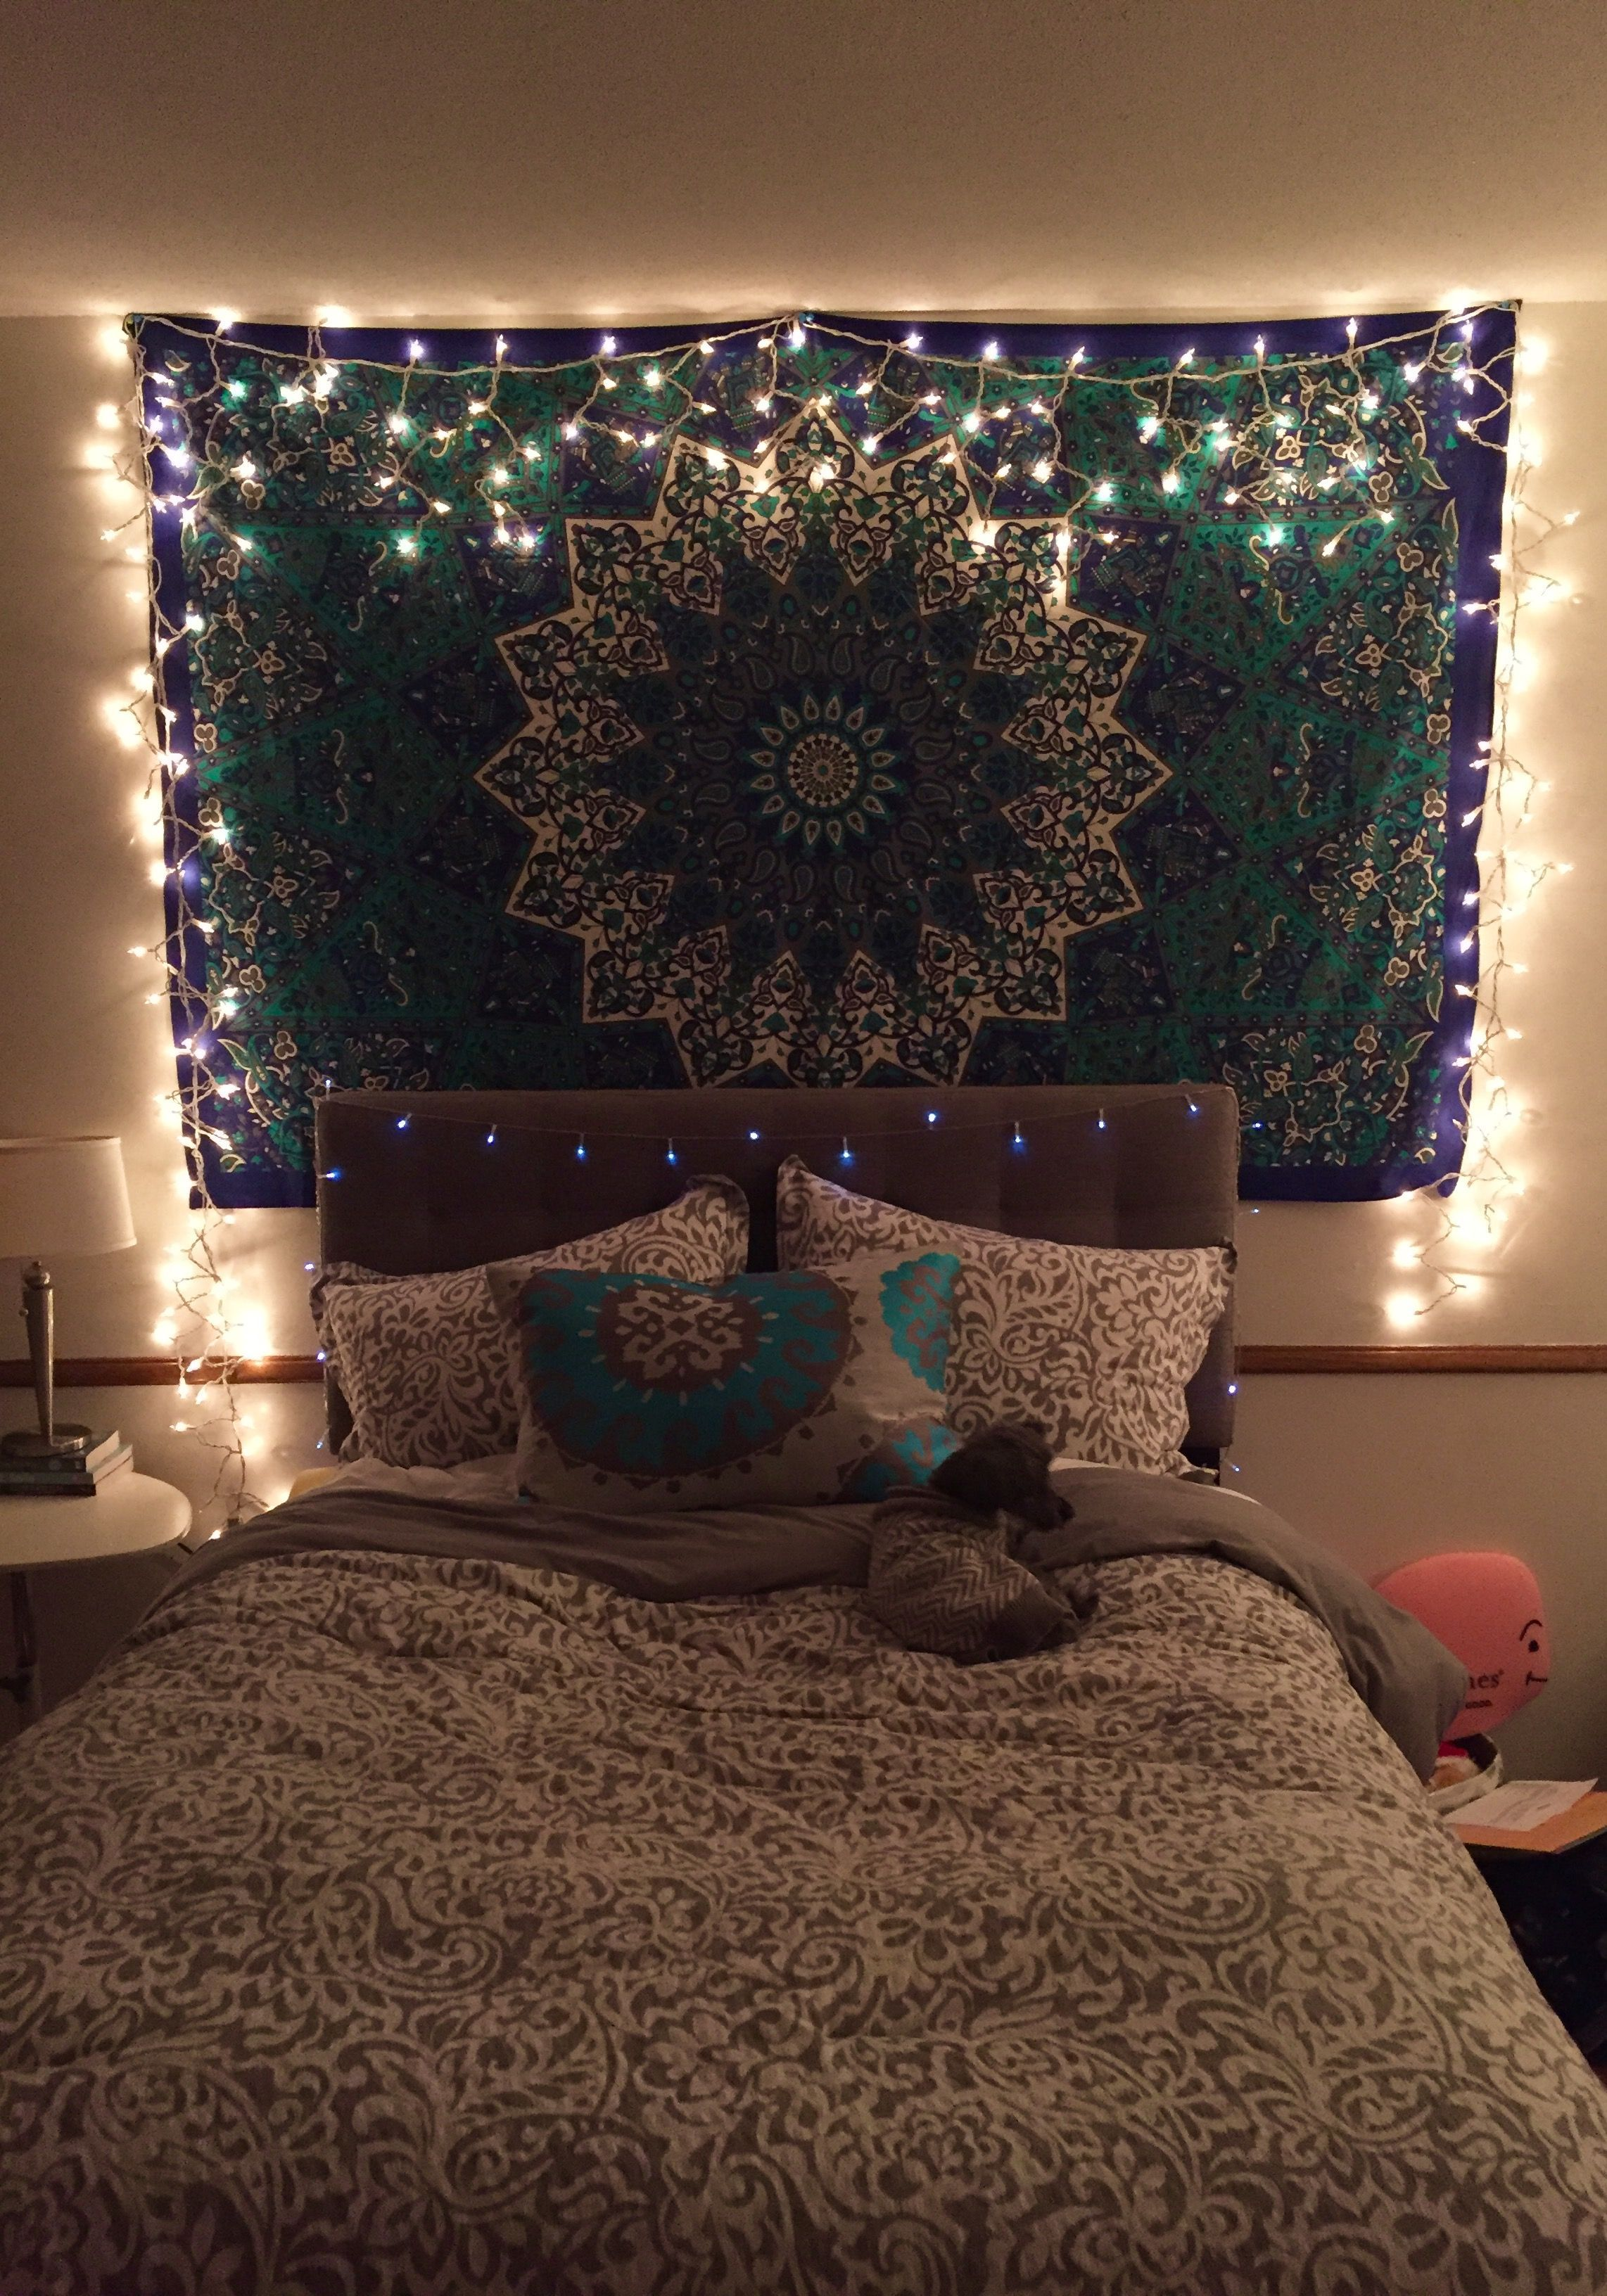 Tapestry Bedroom Ideas Small Spaces In 2020 Turquoise Bedroom Decor Turquoise Room Tapestry Bedroom